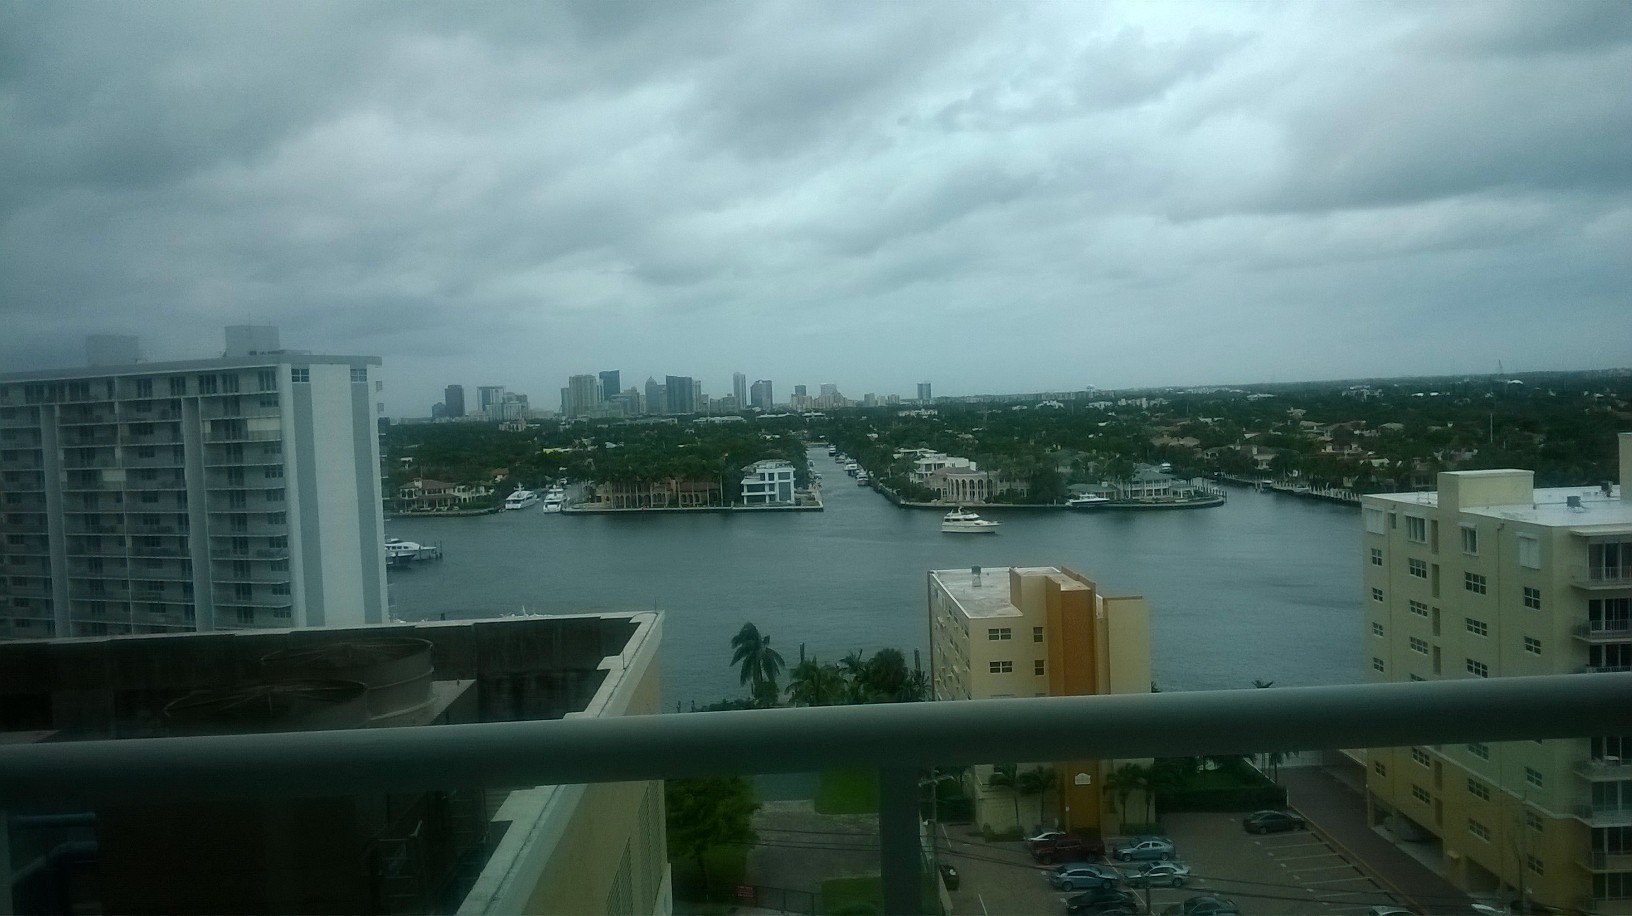 fort lauderdale canals from ritz carlton hotel nov15